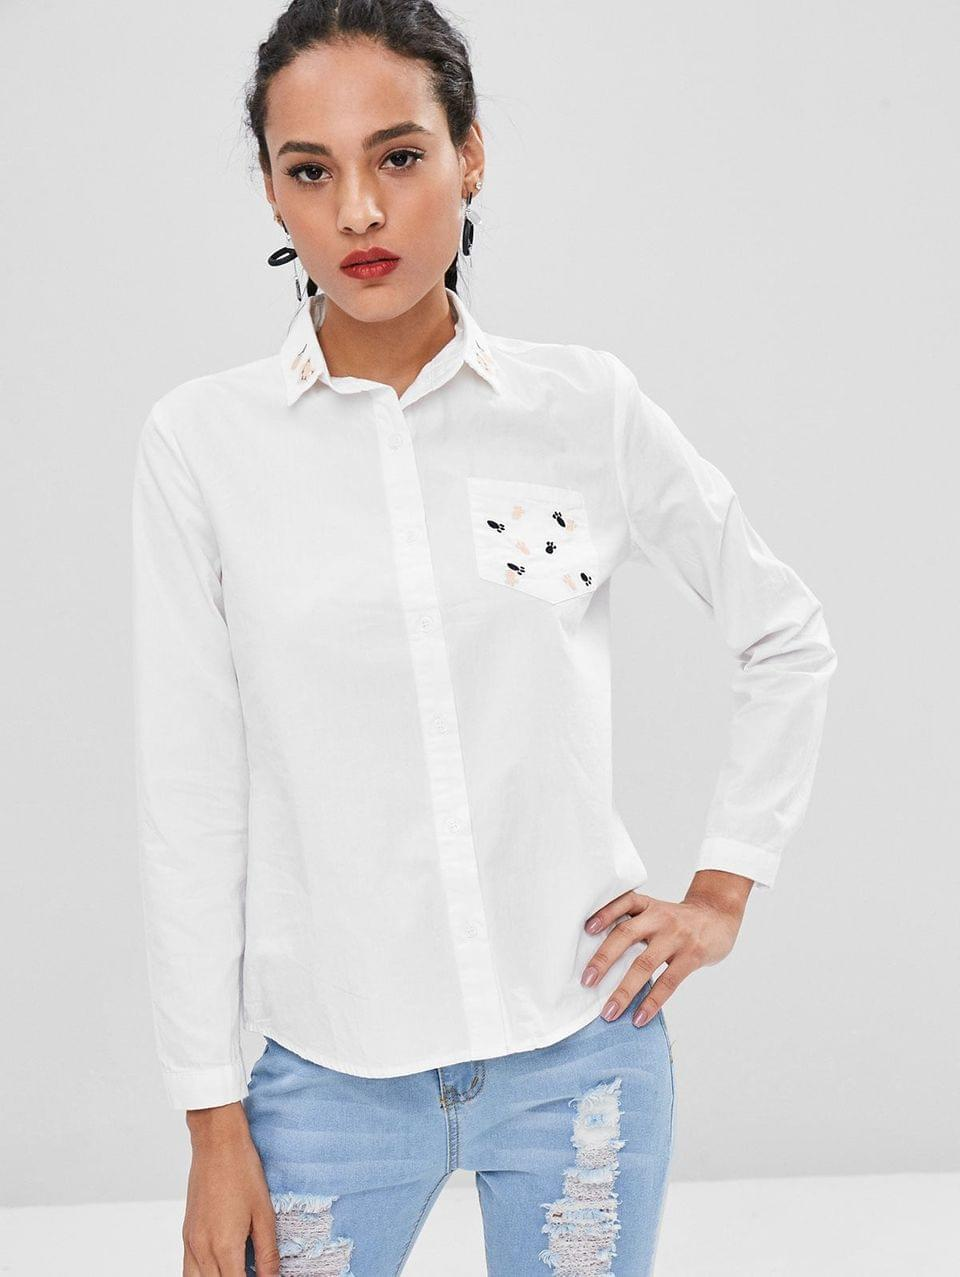 Women's Little Feet Embroidery Cotton Shirt - White L